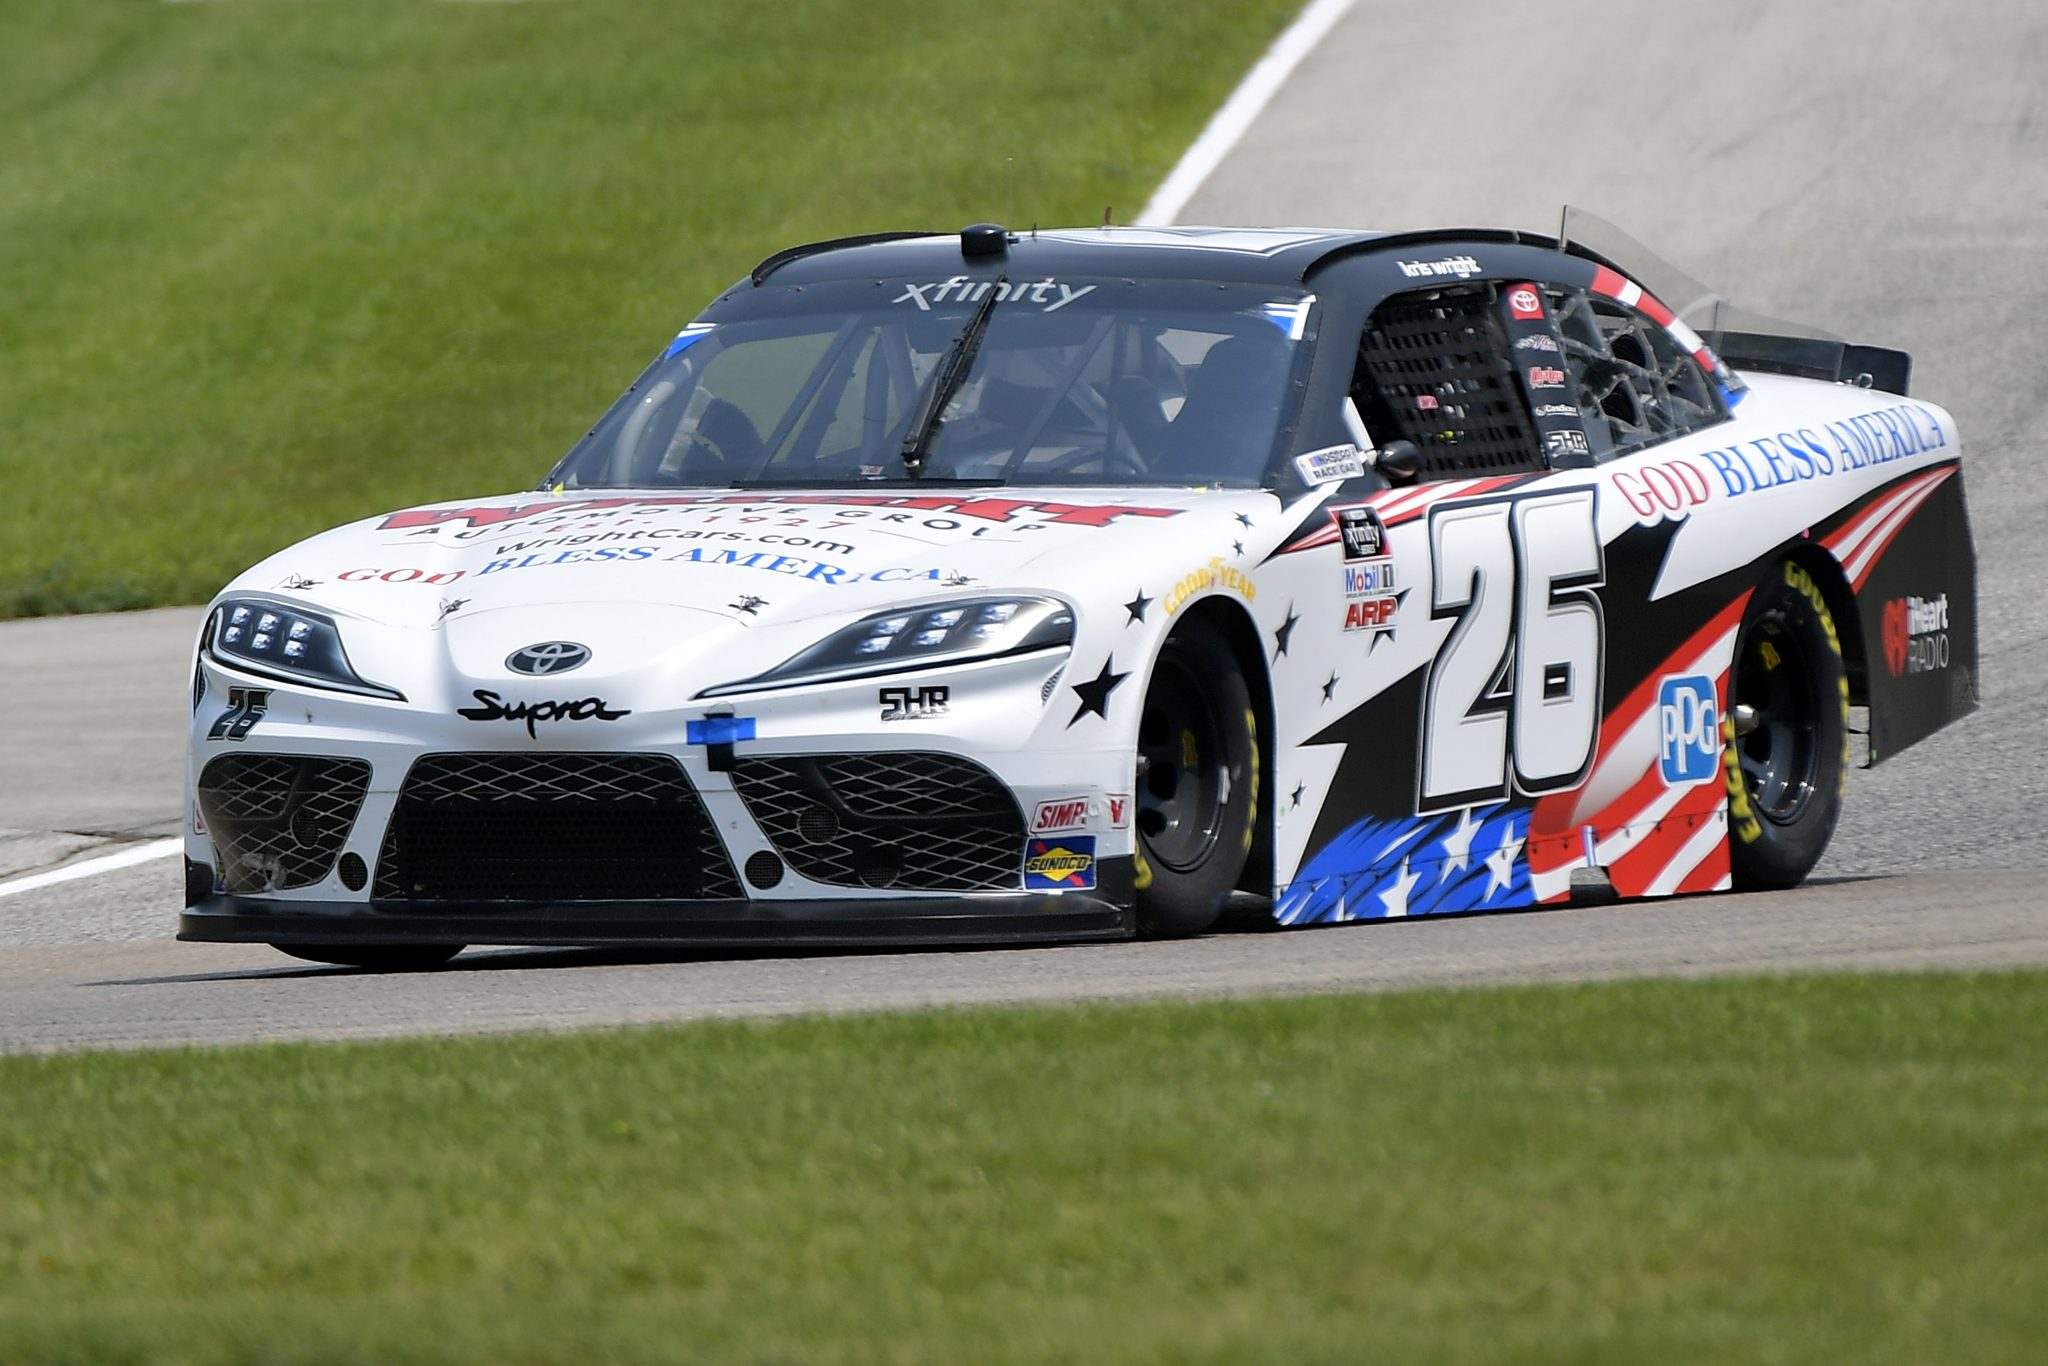 ELKHART LAKE, WISCONSIN - JULY 03: Kris Wright, driver of the #26 Wright Automotive Toyota, drives during the NASCAR Xfinity Series Henry 180 at Road America on July 03, 2021 in Elkhart Lake, Wisconsin. (Photo by Logan Riely/Getty Images) | Getty Images